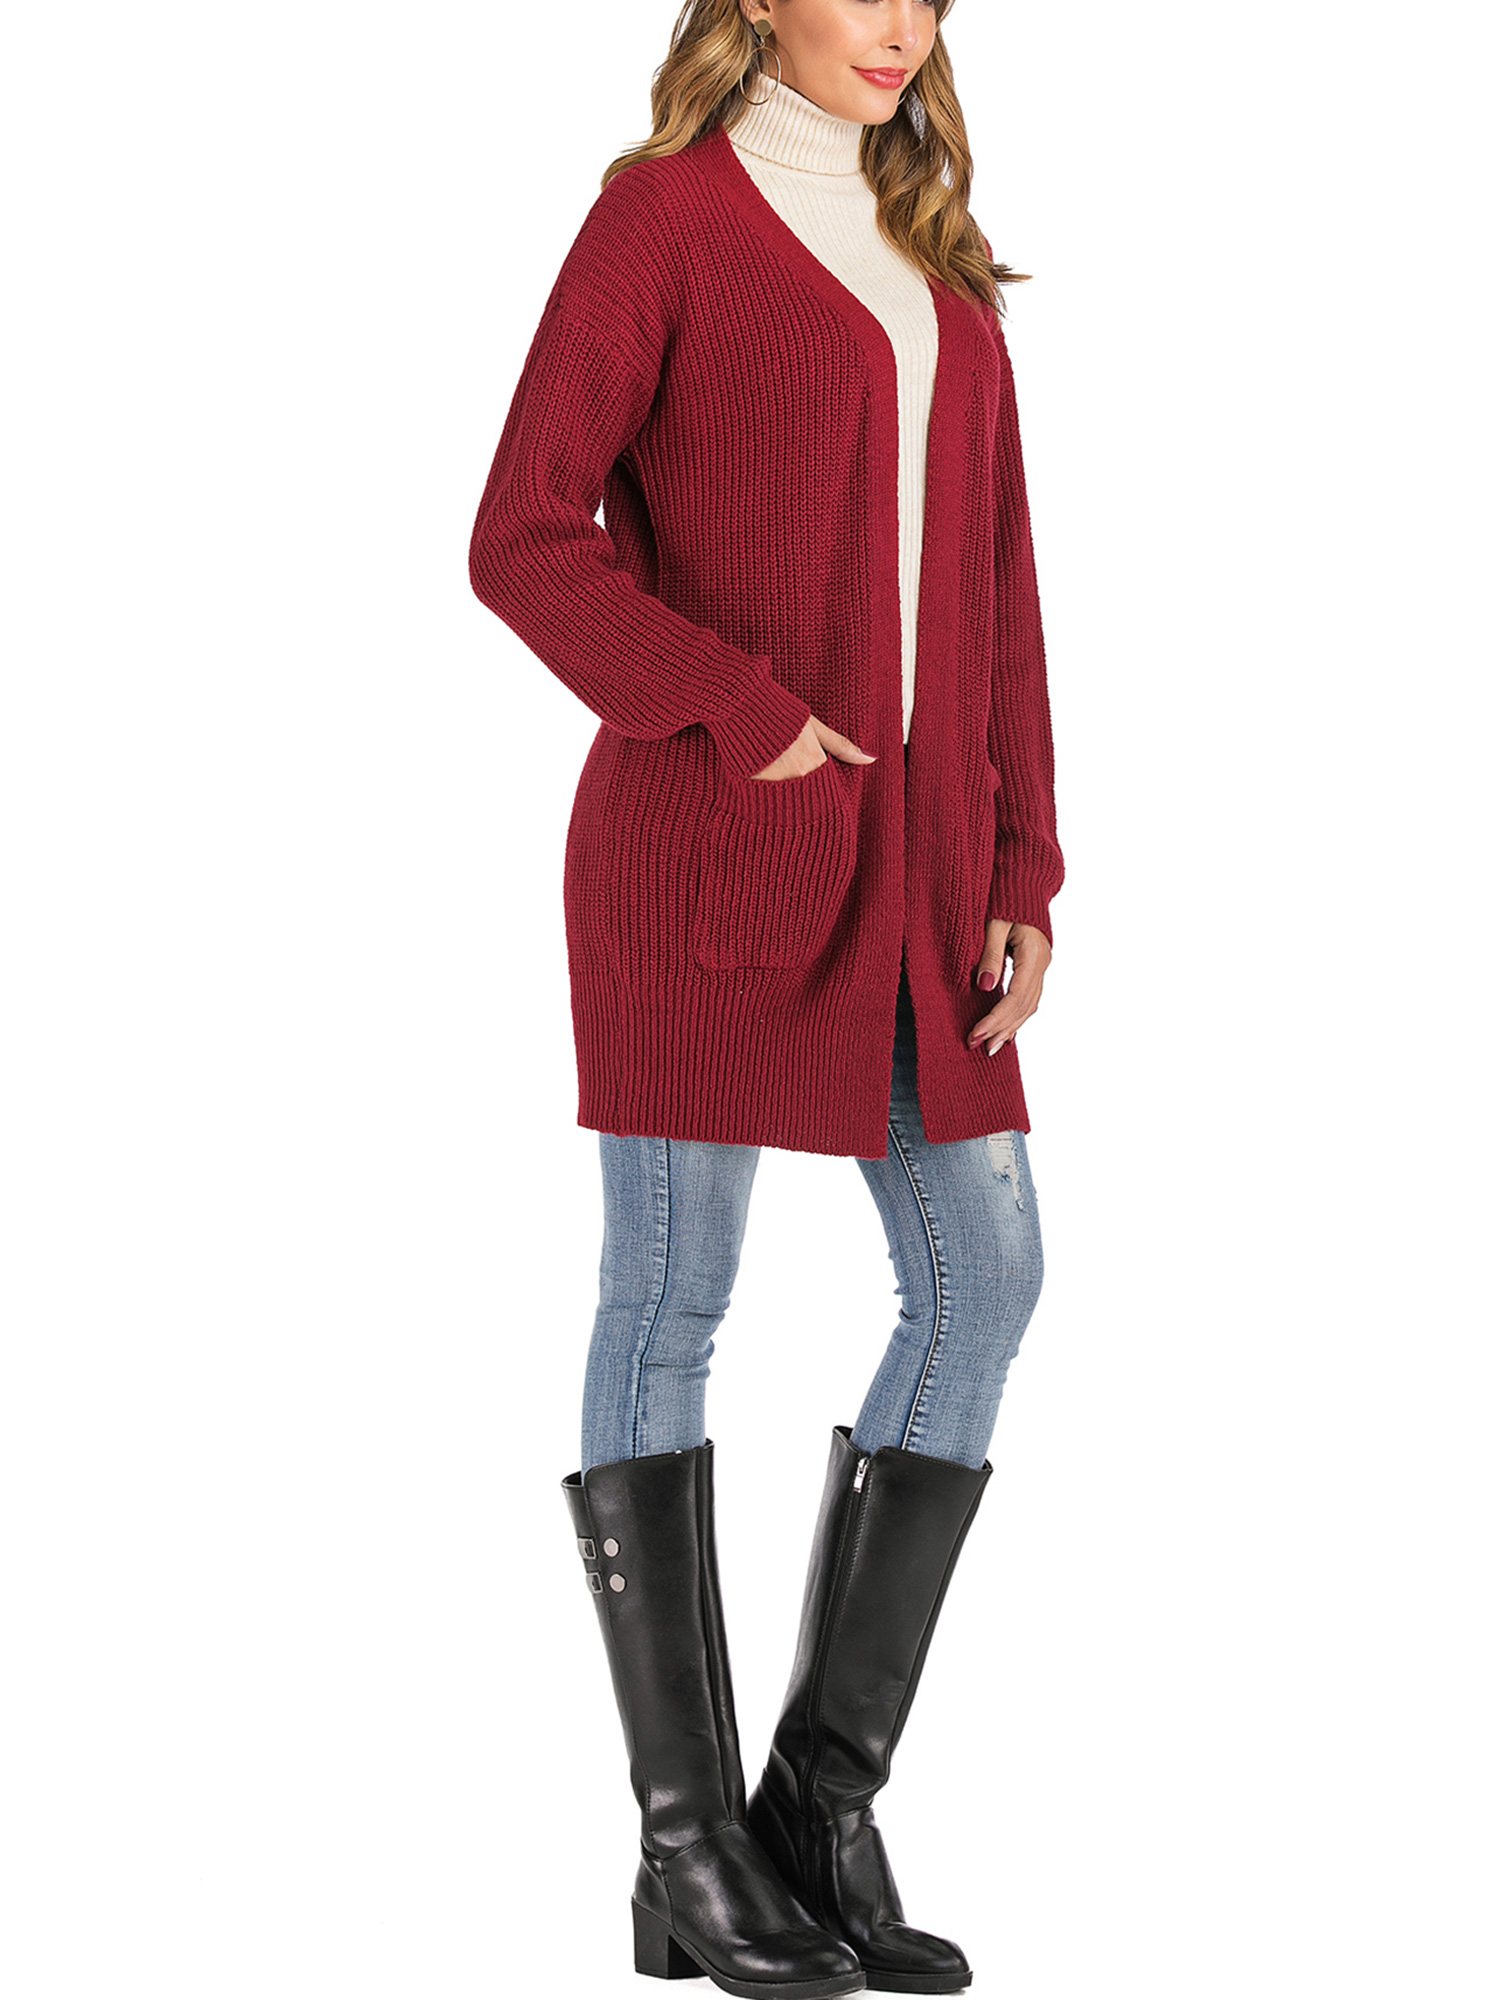 Winter Women Knit Open Front Baggy Cardigan Coat Tops Chunky Knitted Sweater Long Sleeve Plus Size Duster Cardigan,Red